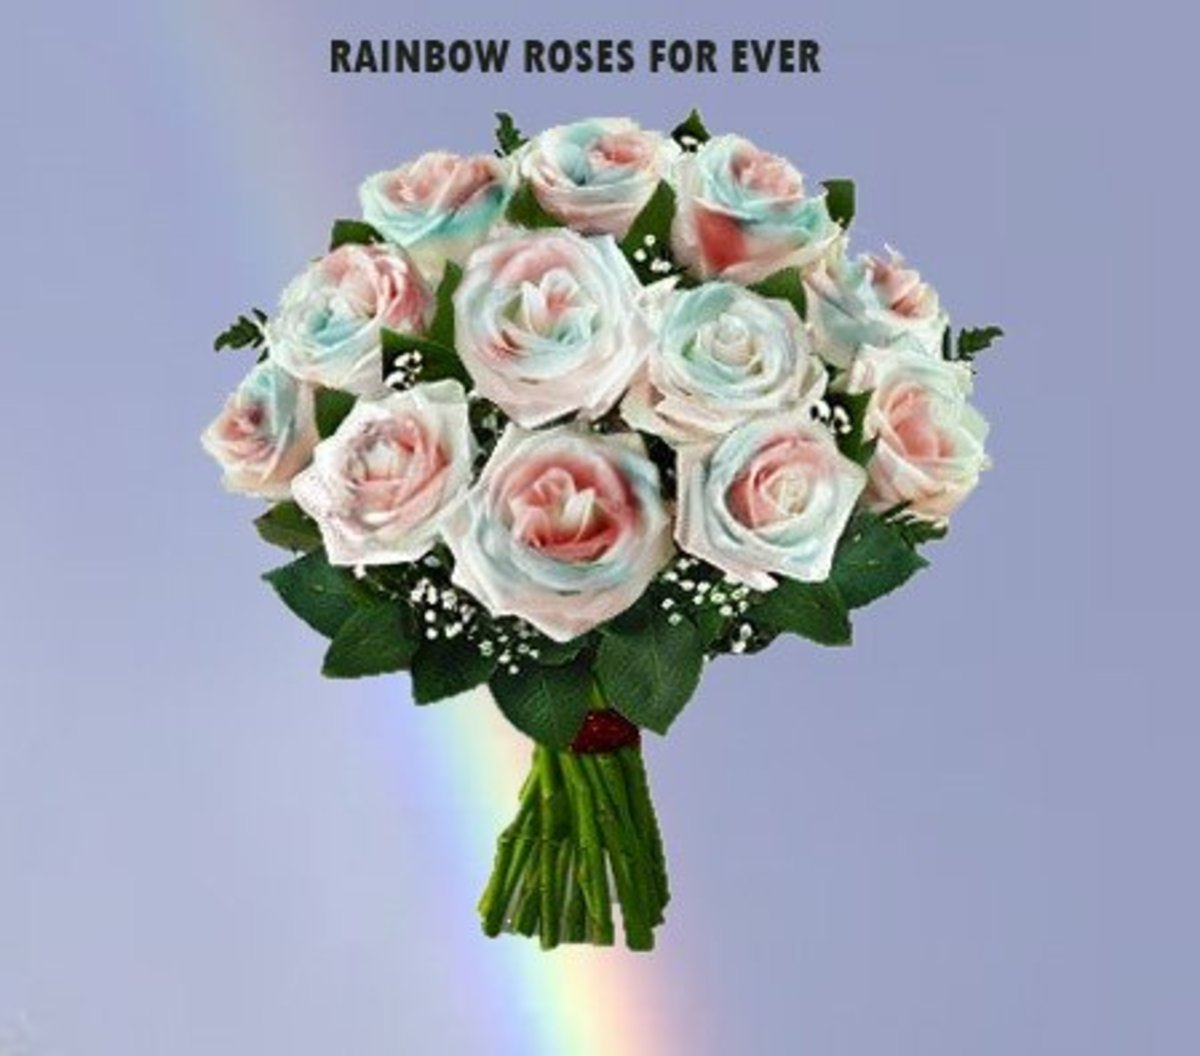 Rainbow Roses can bring smile...